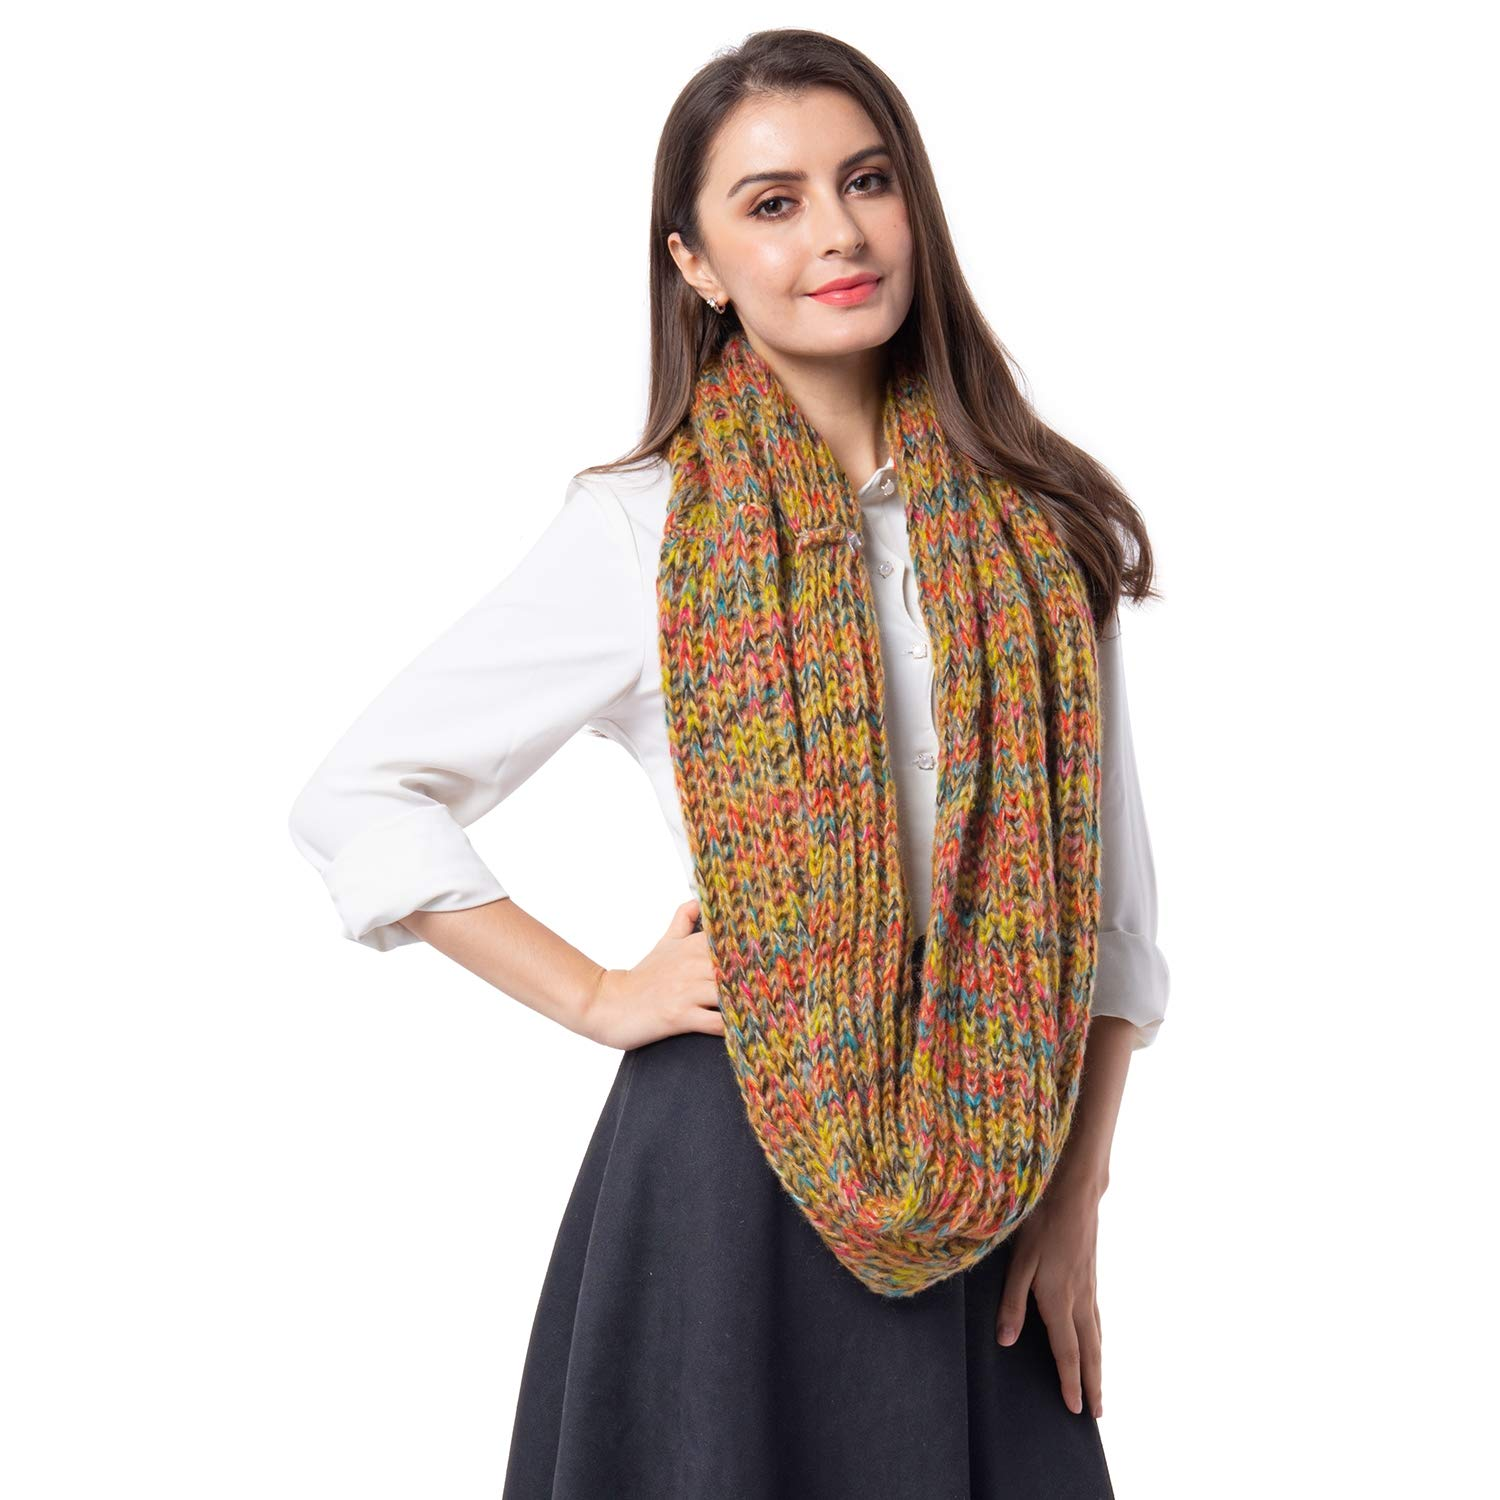 Yellow with Multi color Infinity Lightweight Scarf Wrap Hijabs for Women 27.96x14.96  100% Acrylic